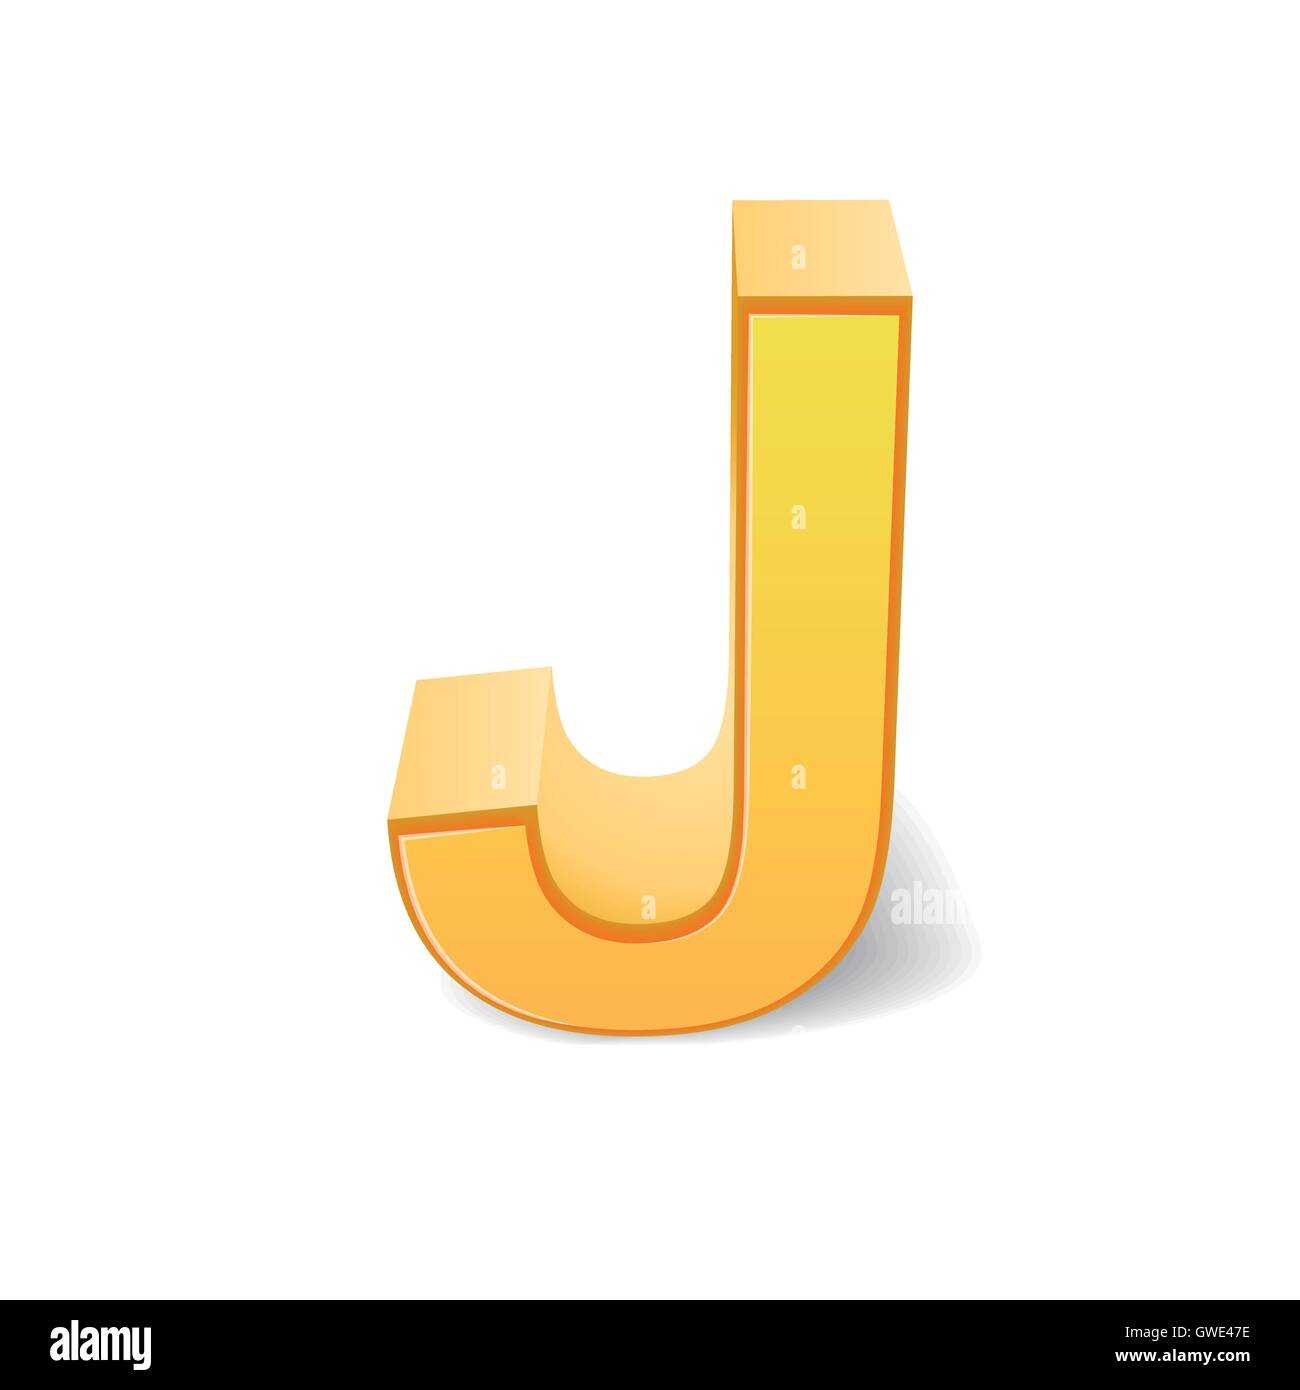 3d Image Yellow Letter J Isolated On White Background Stock Vector